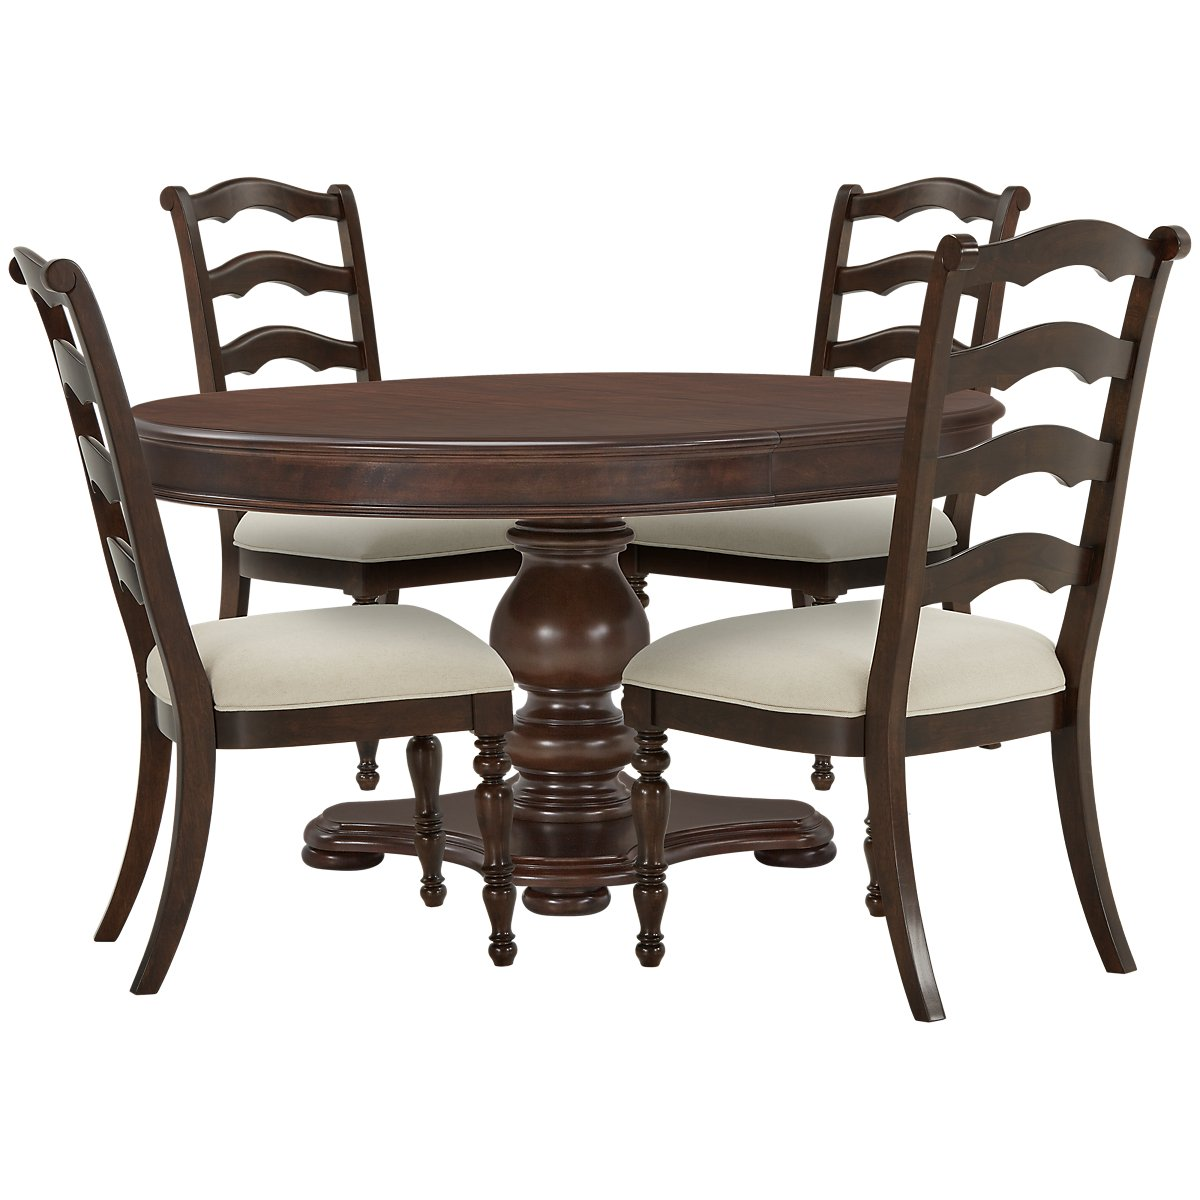 Bayberry Dark Tone Round Table 4 Chairs: City Furniture: Savannah Dark Tone Round Table & 4 Chairs